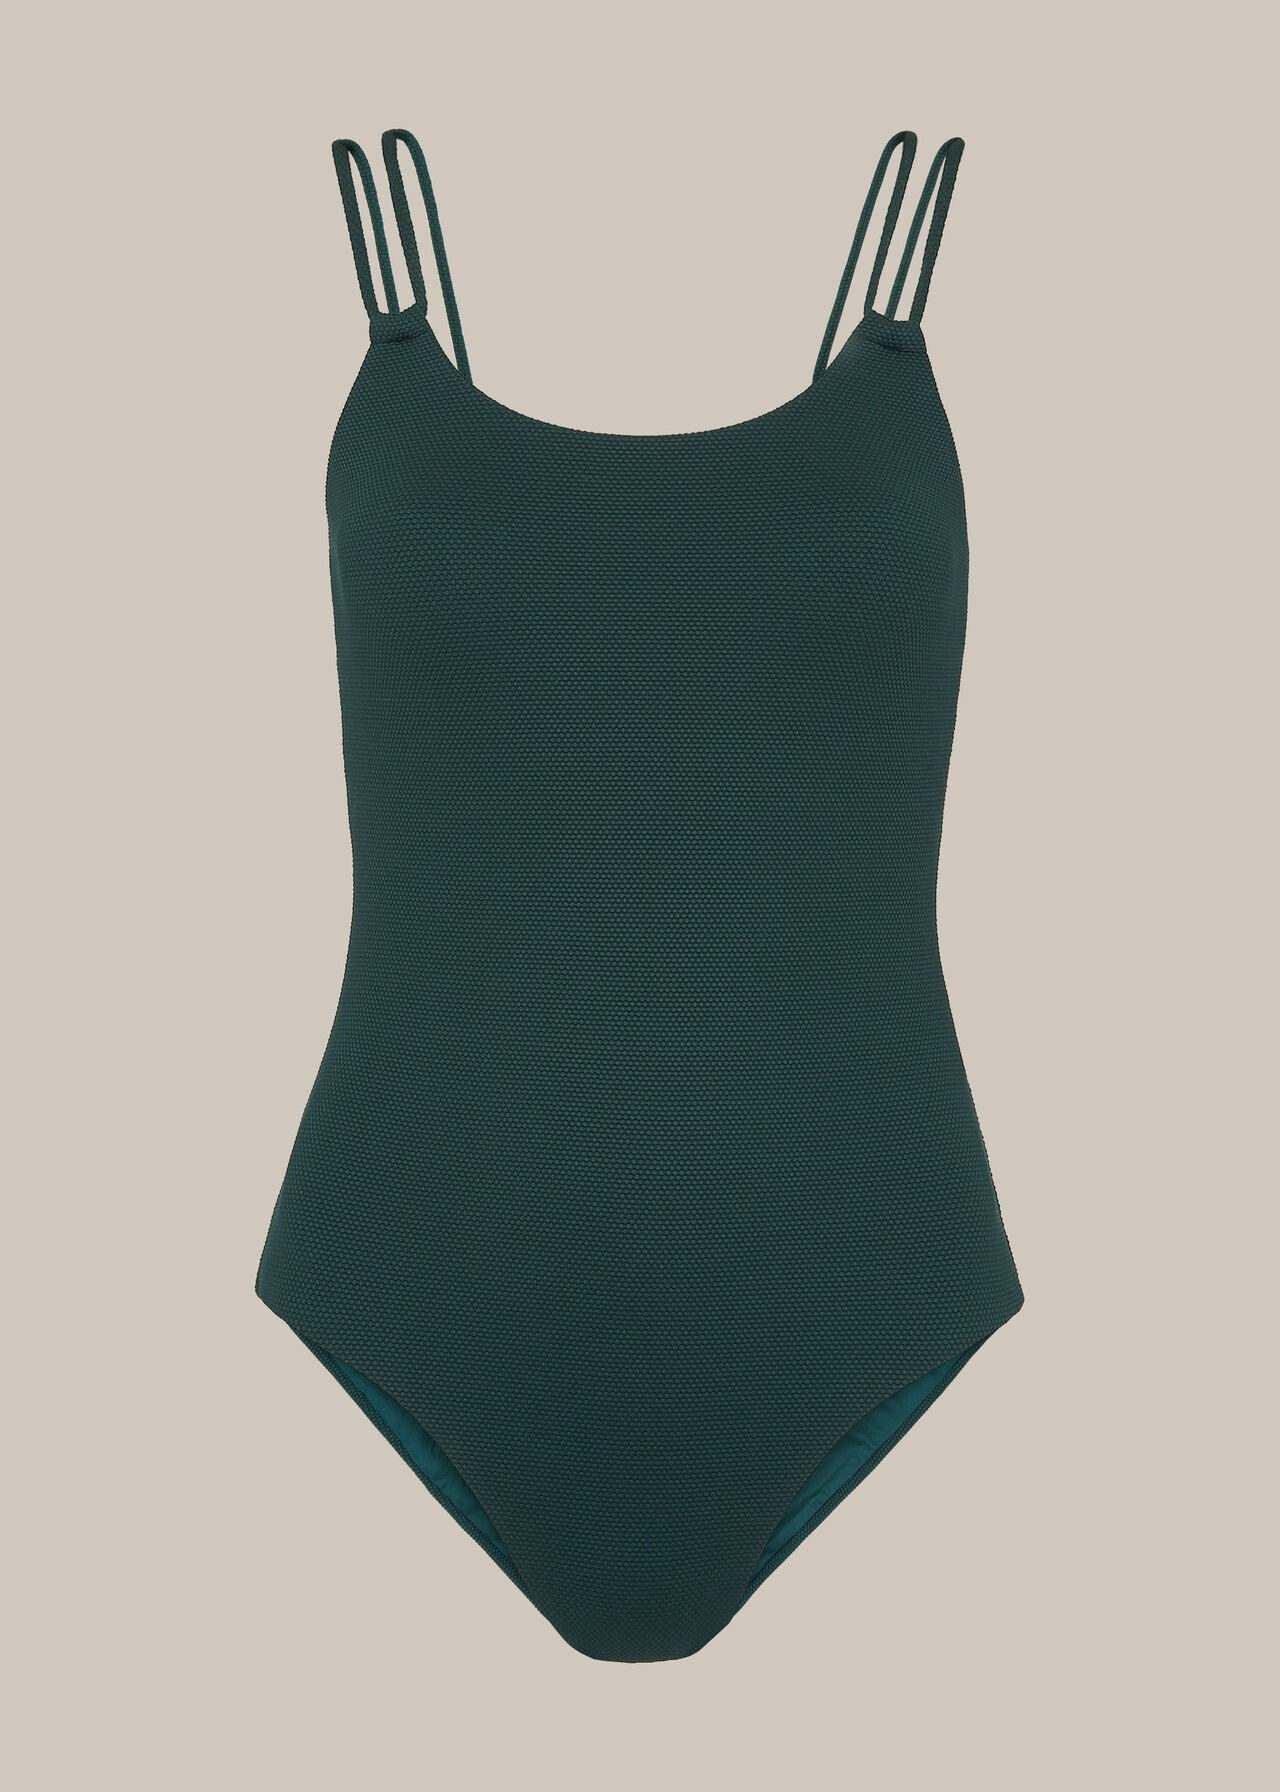 Double Strap Textured Swimsuit